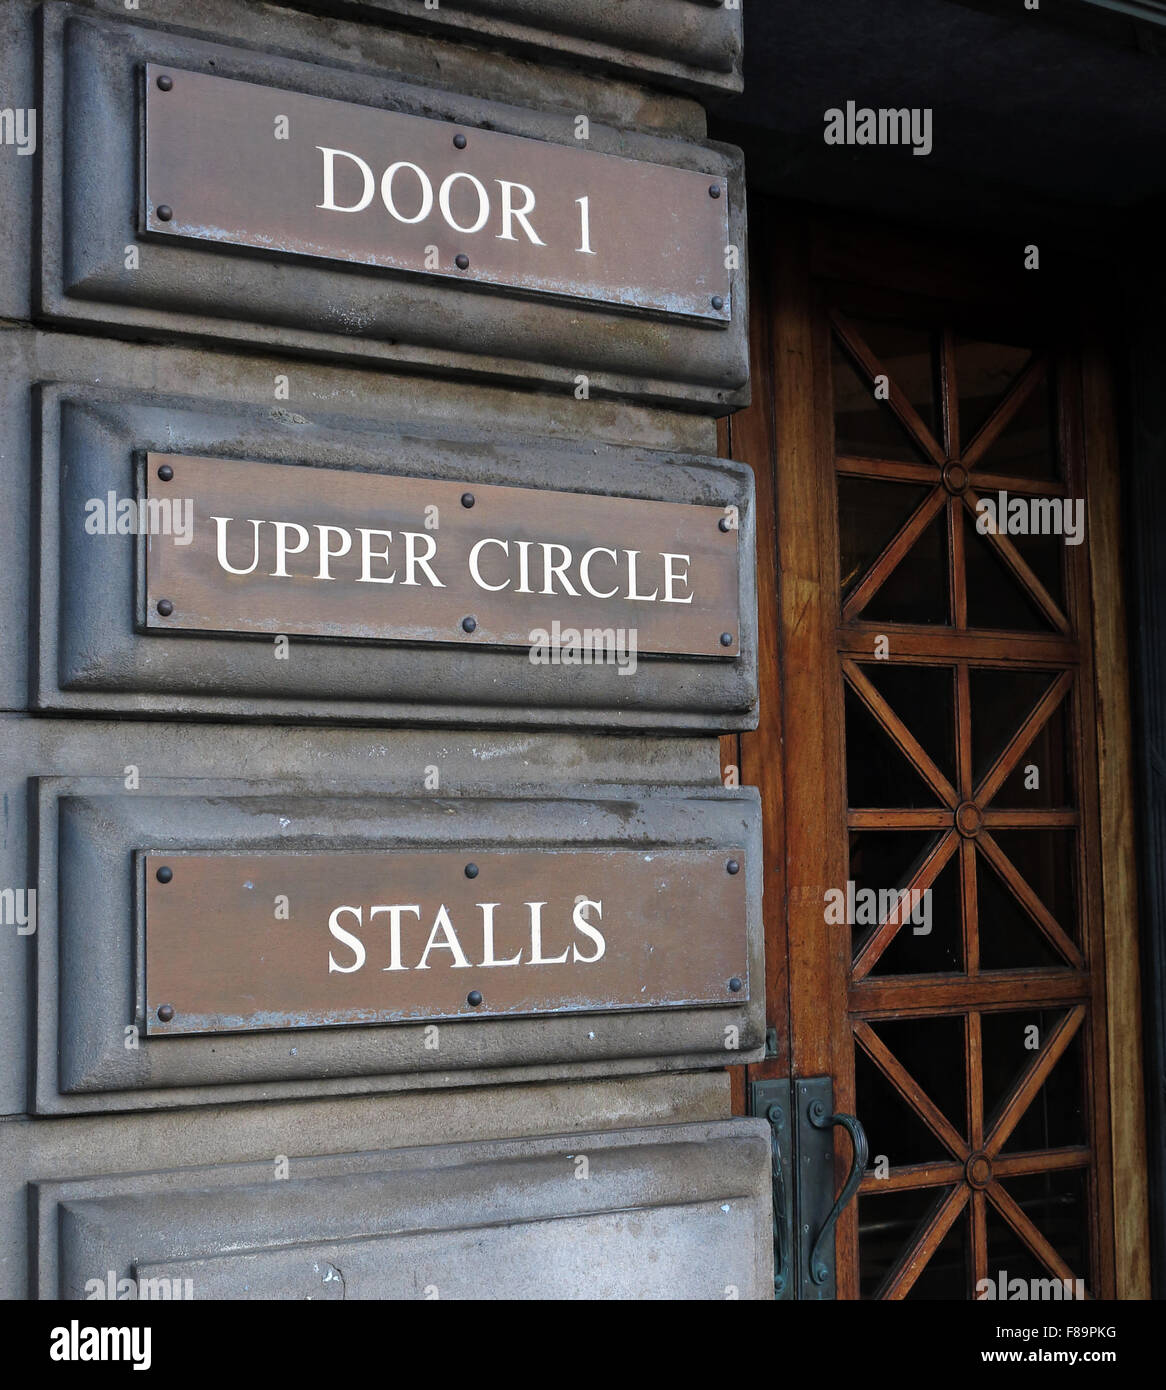 Usher Hall Door 1 - Upper Circle, Stalls, Lothian Road, Edinburgh,Scotland, UK - Stock Image